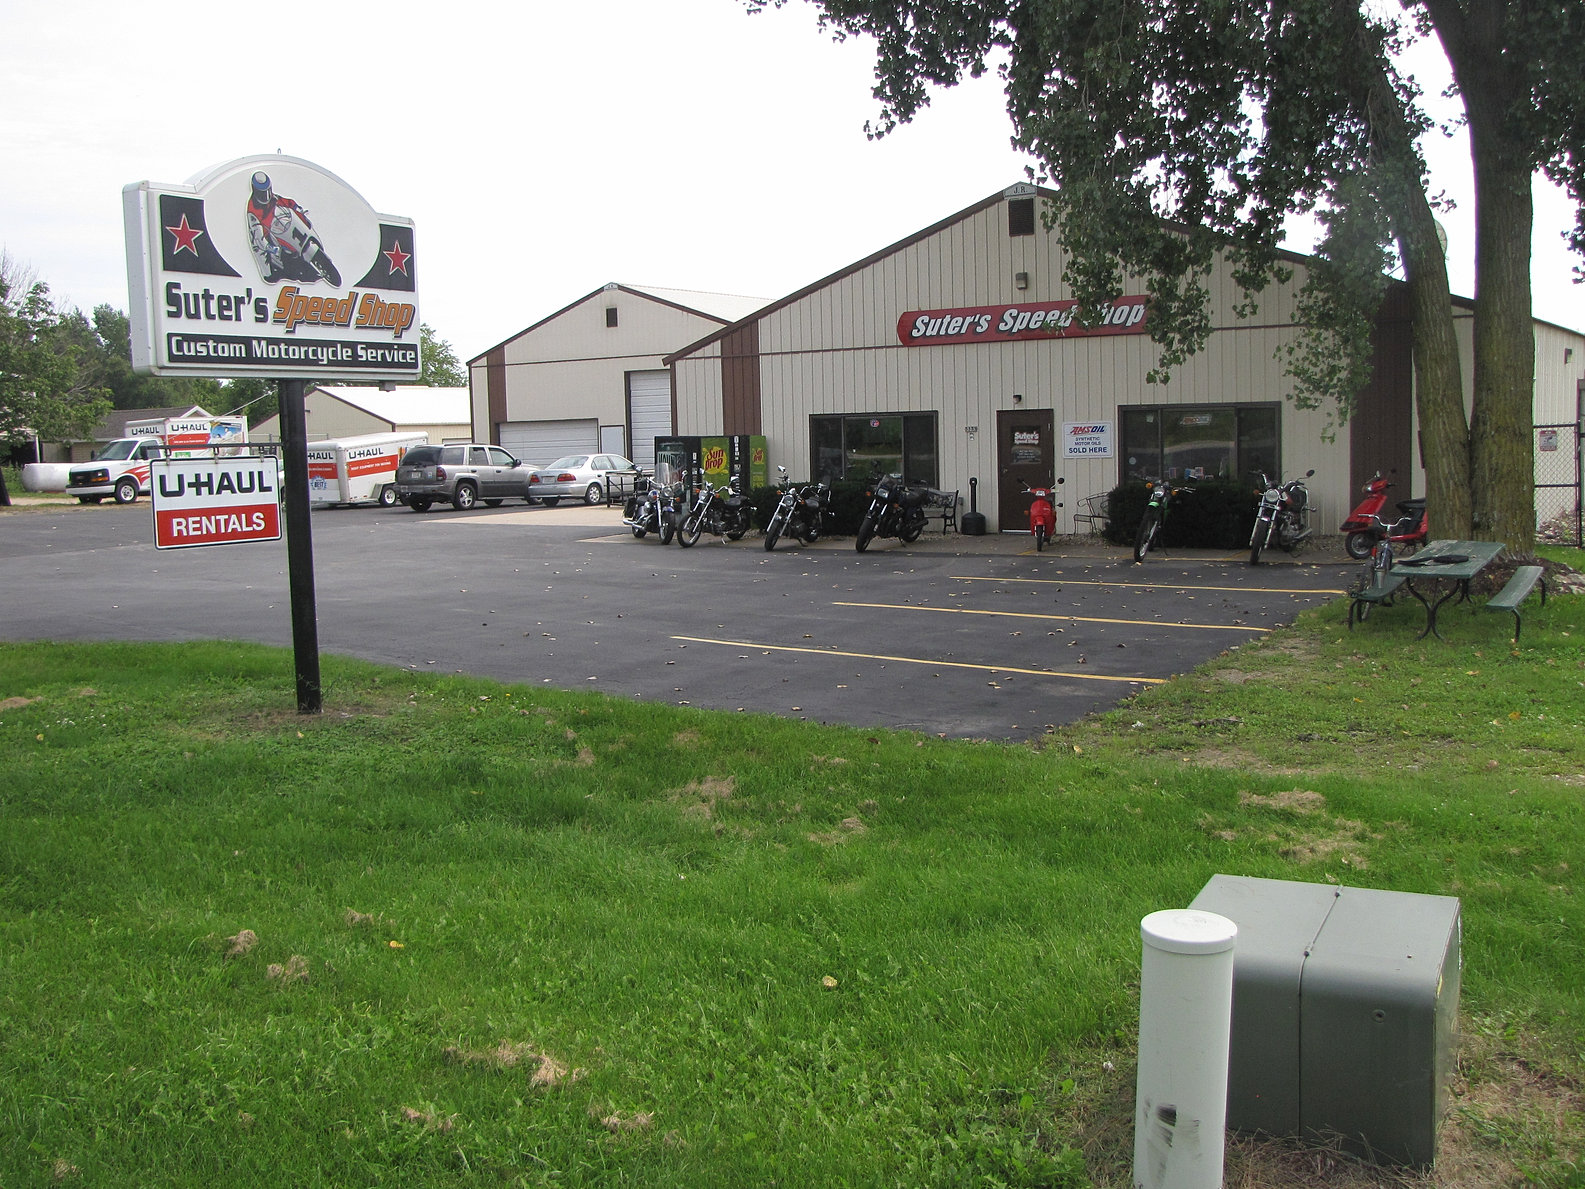 House of speed green bay - Suter S Speed Shop Ample Parking